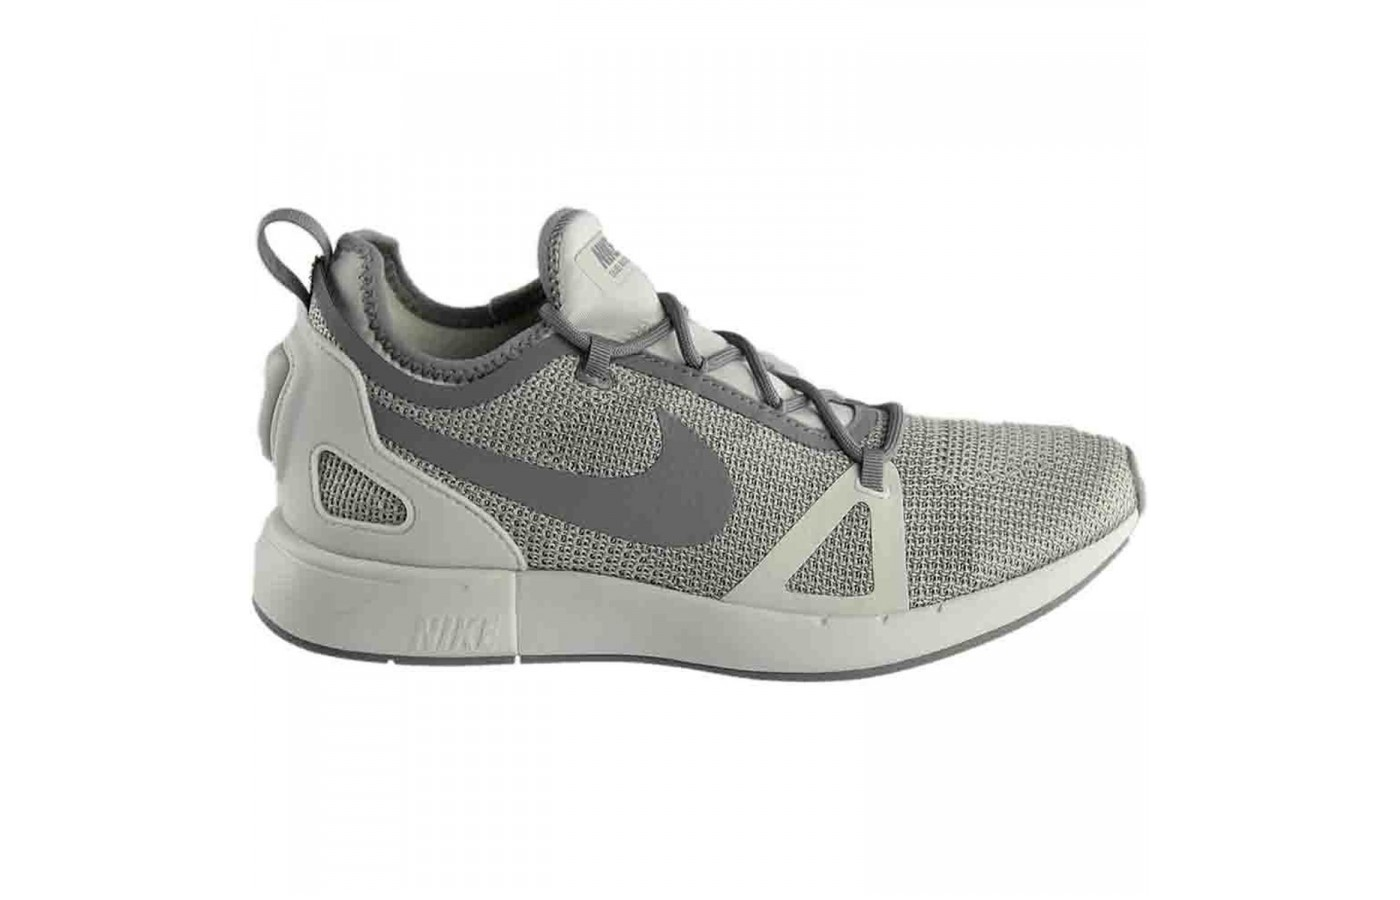 The Nike Duel Racer in a tri-toned grey colorway